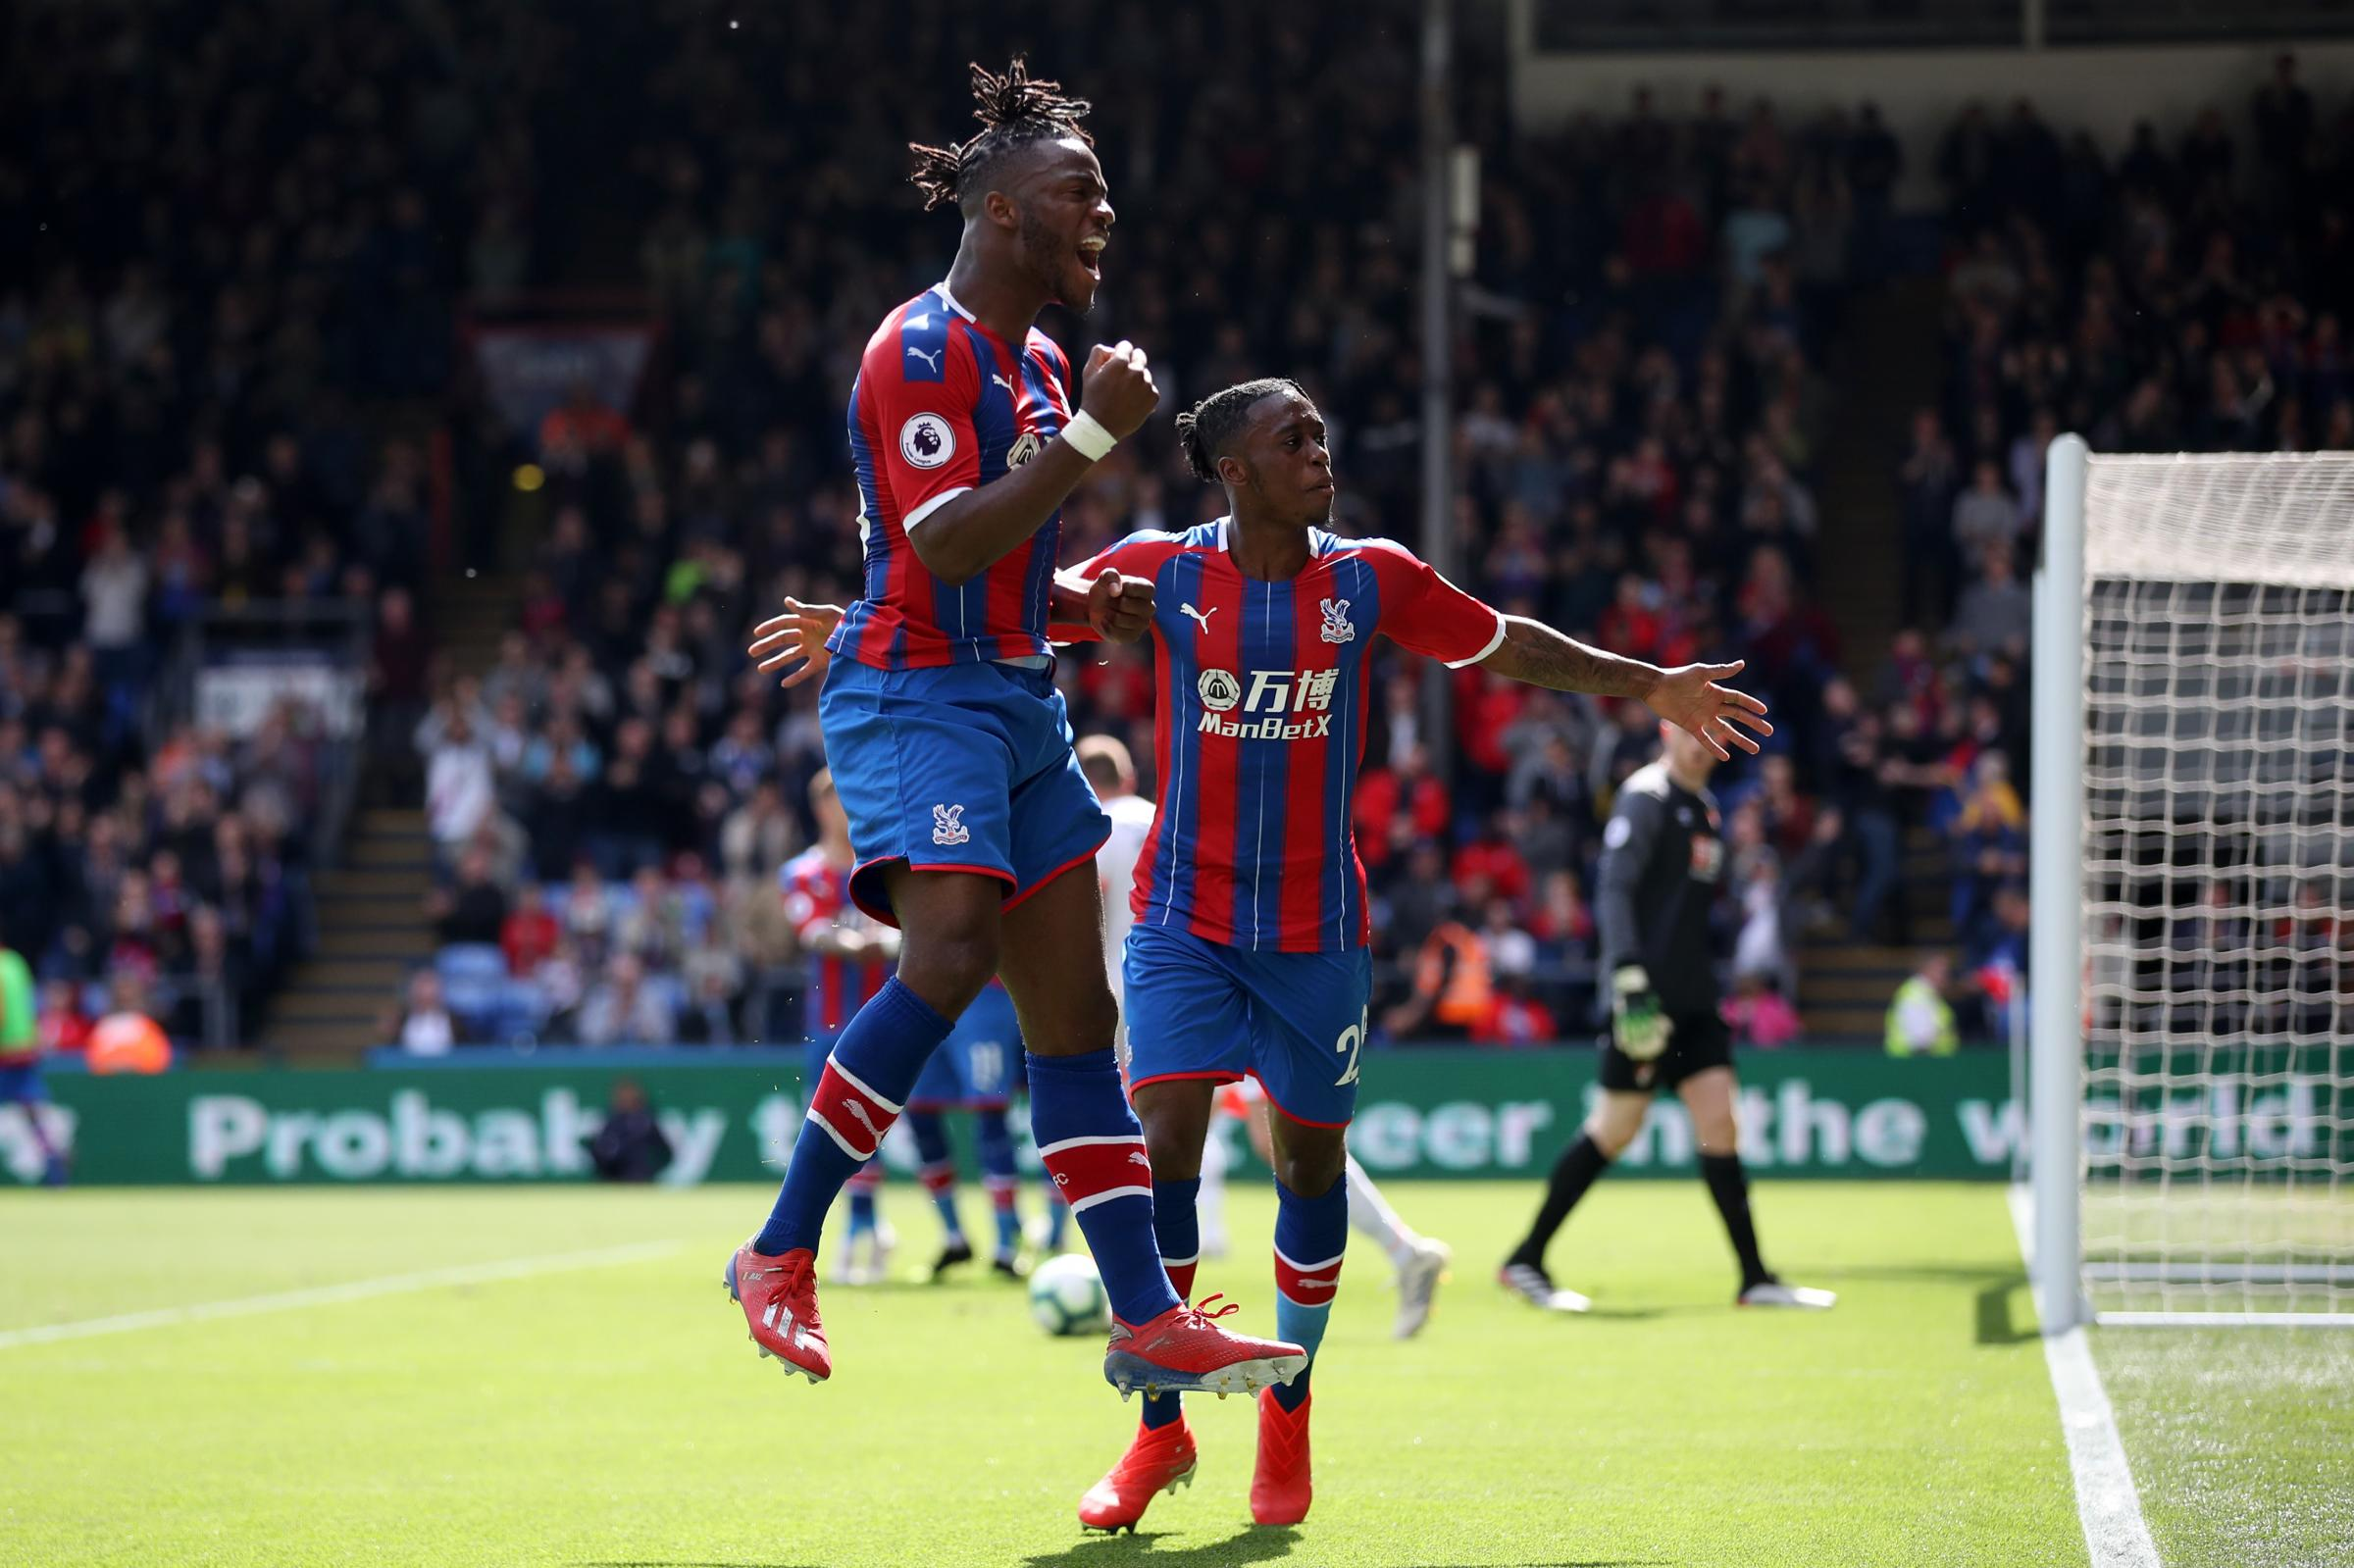 Crystal Palace 5-3 Bournemouth - Zaha inspires Eagles in goal-fest